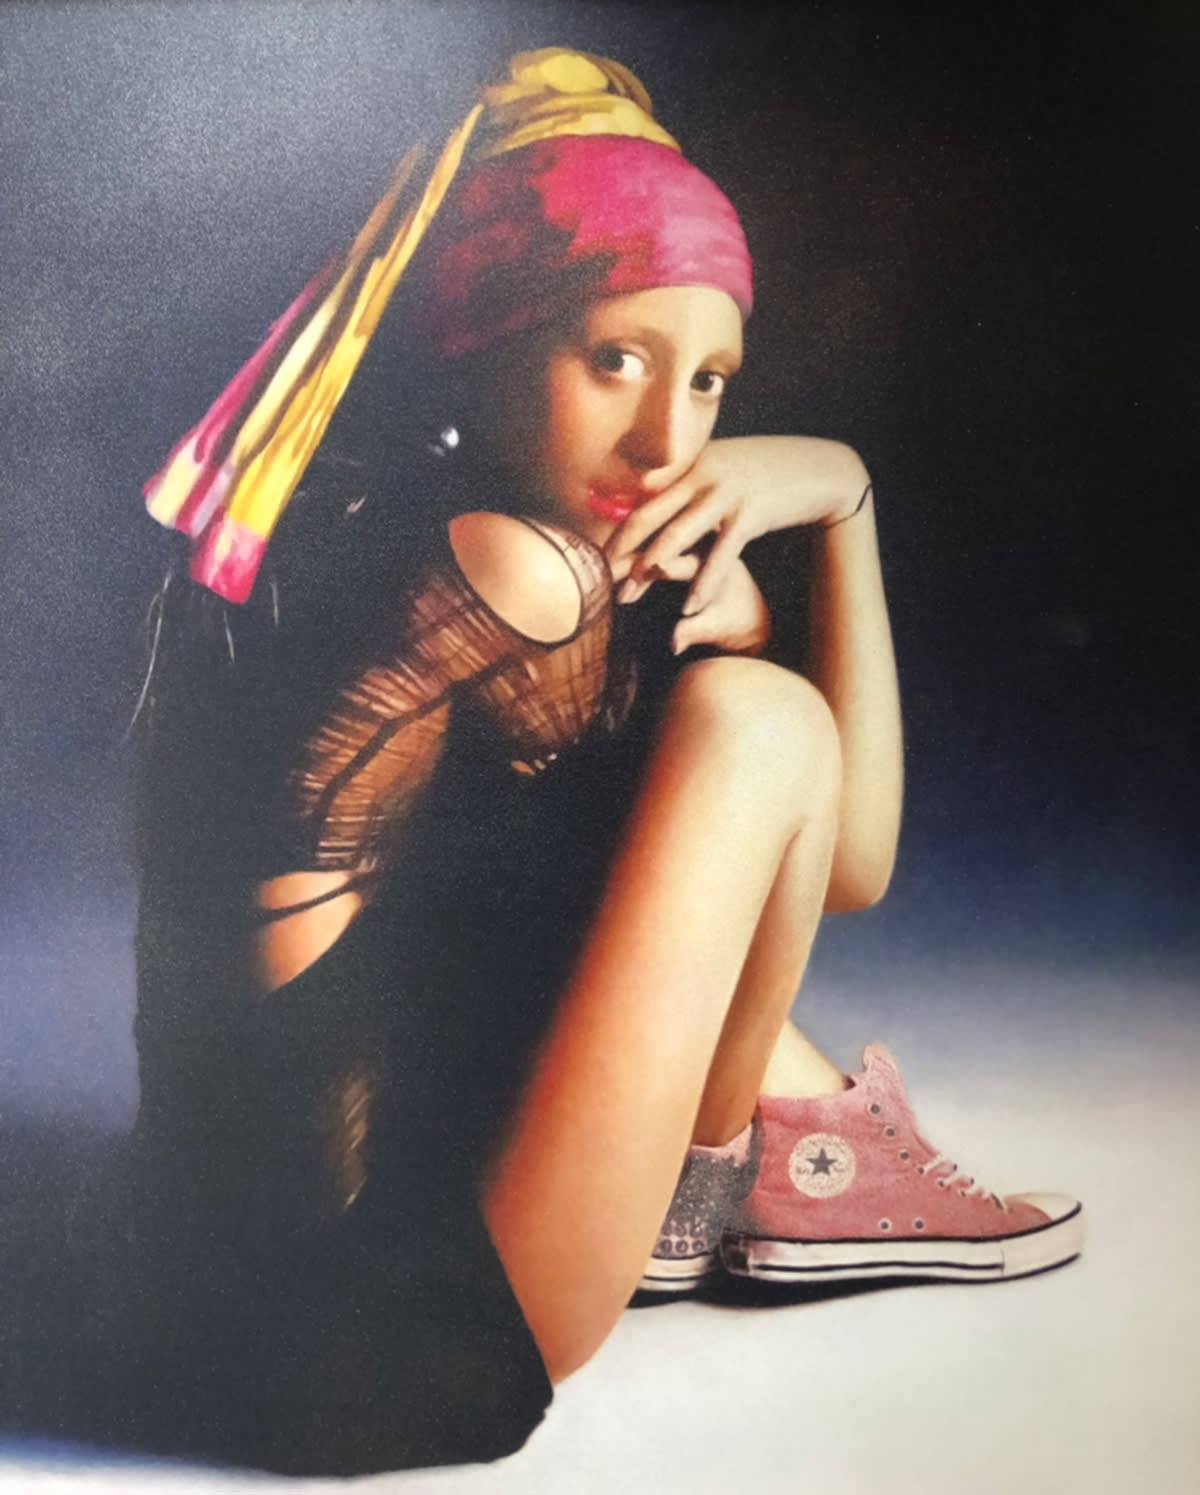 The Girl in the Pink Converse by Mason Storm, estimated at £4,500